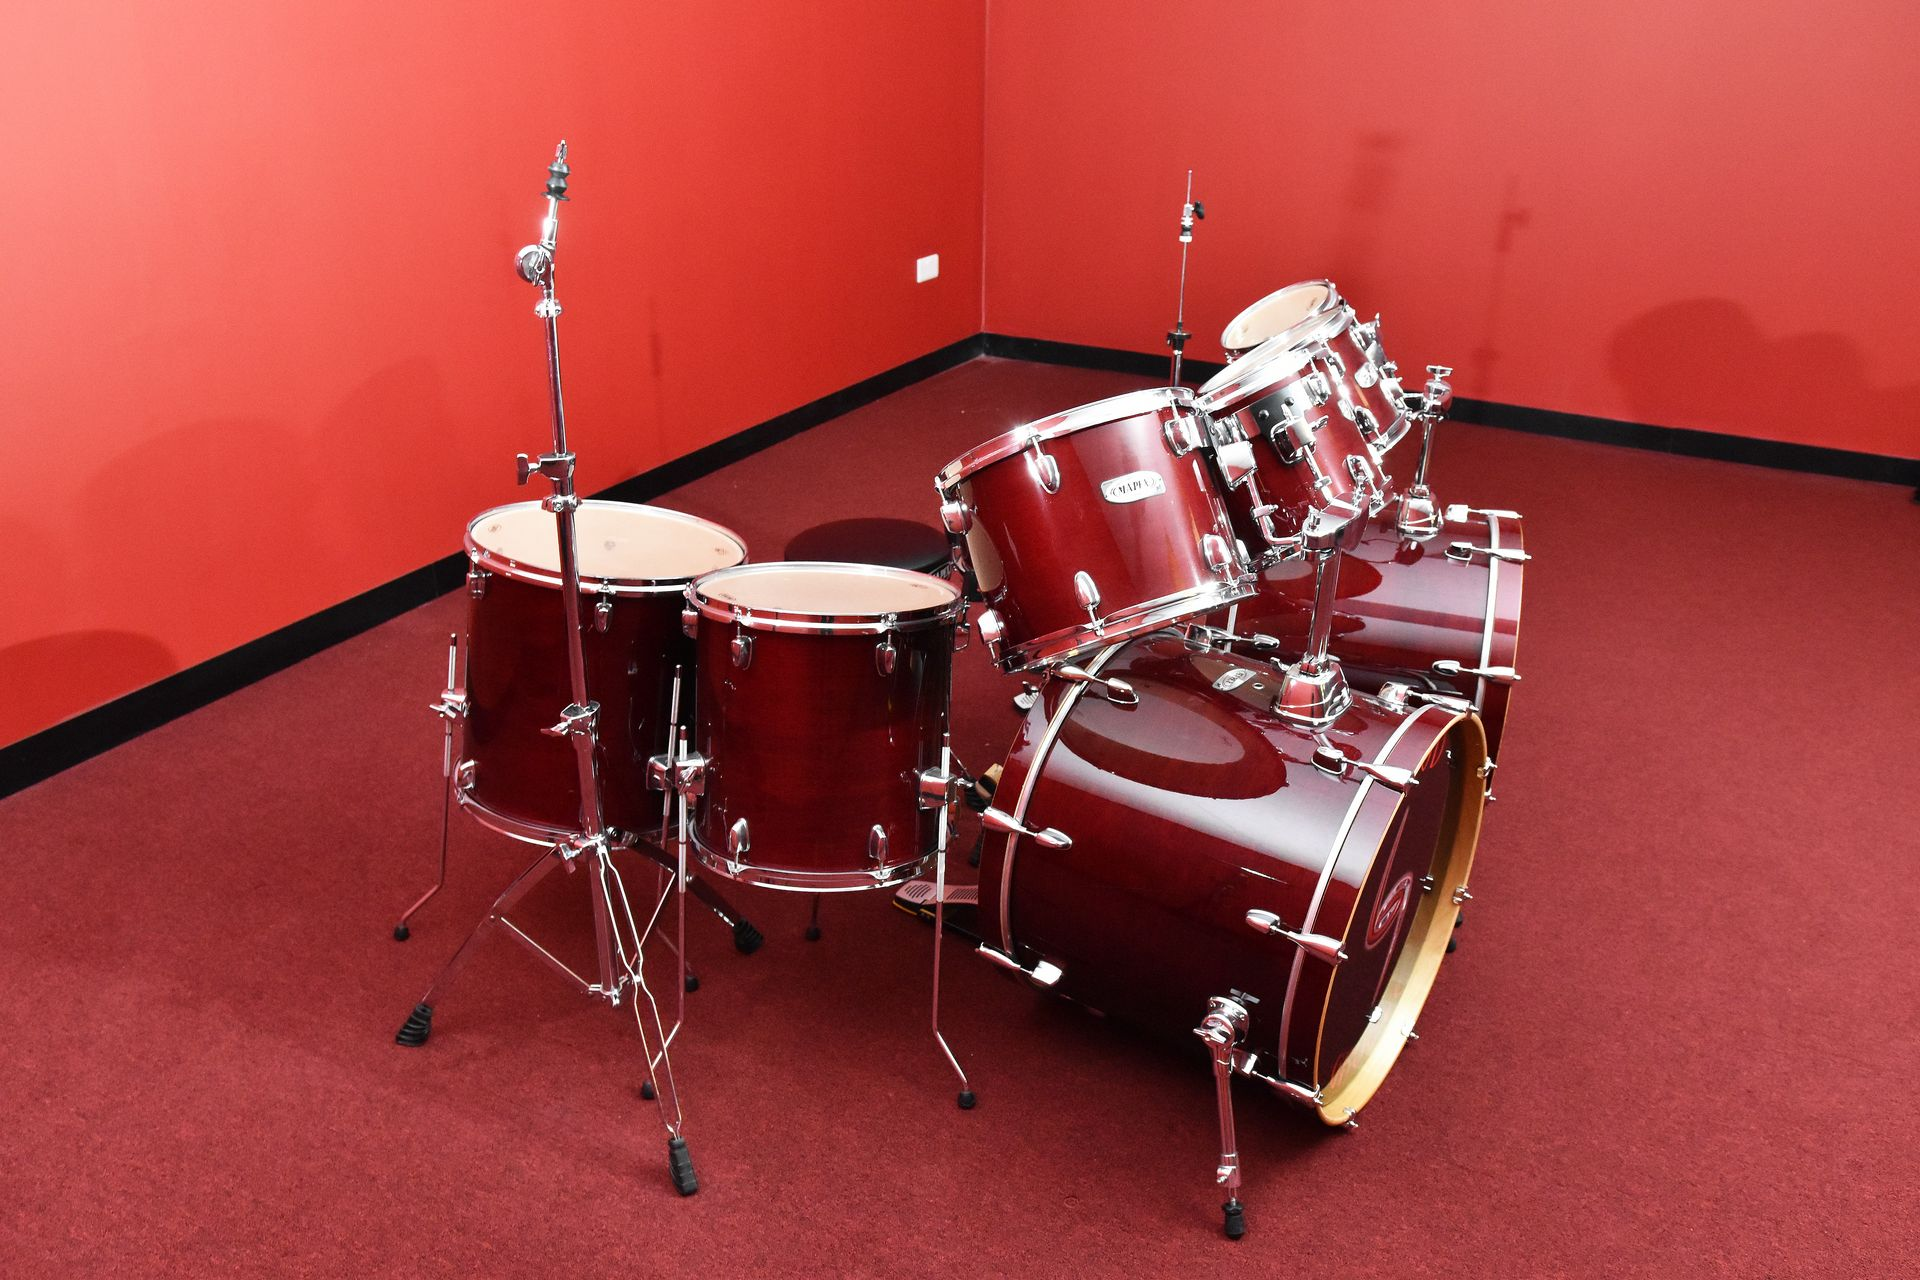 MAPEX 9-PIECE MEGA DRUM KIT